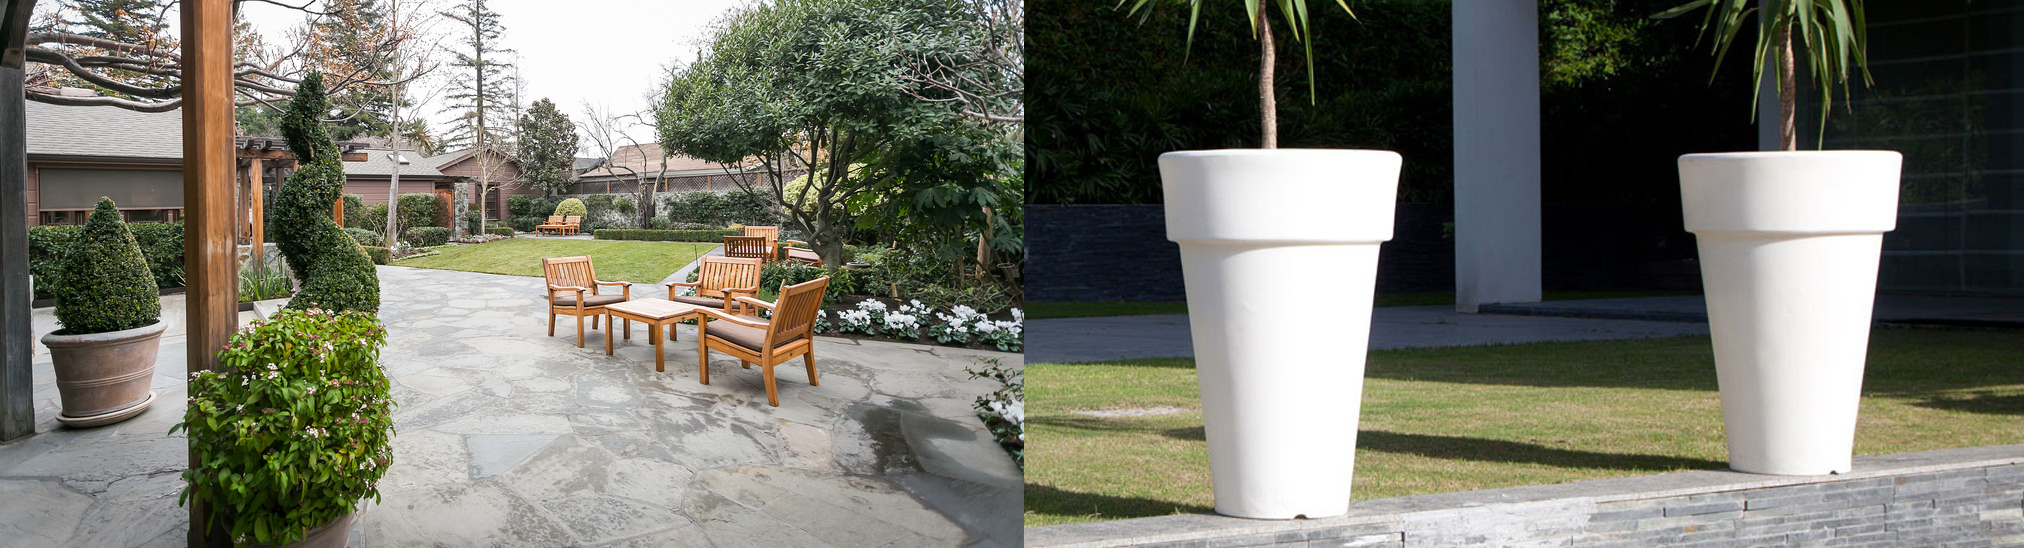 Patio and Planters